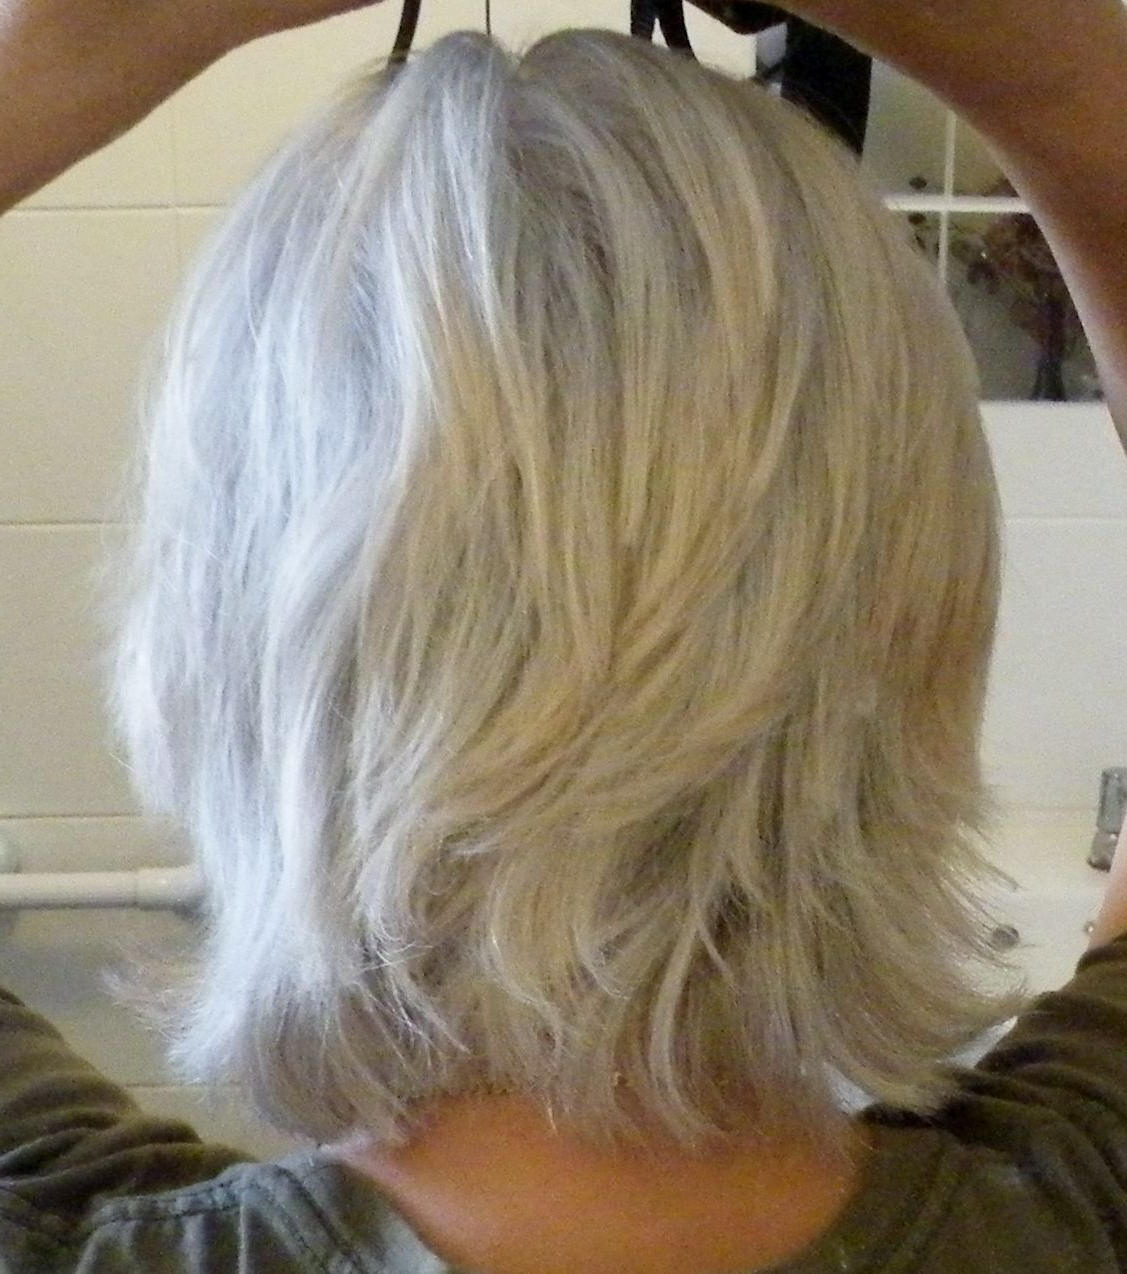 Famous Medium Haircuts For Grey Hair In Possible Short Ish Cut For When The Growing Out Phase Is Driving Me (View 10 of 20)